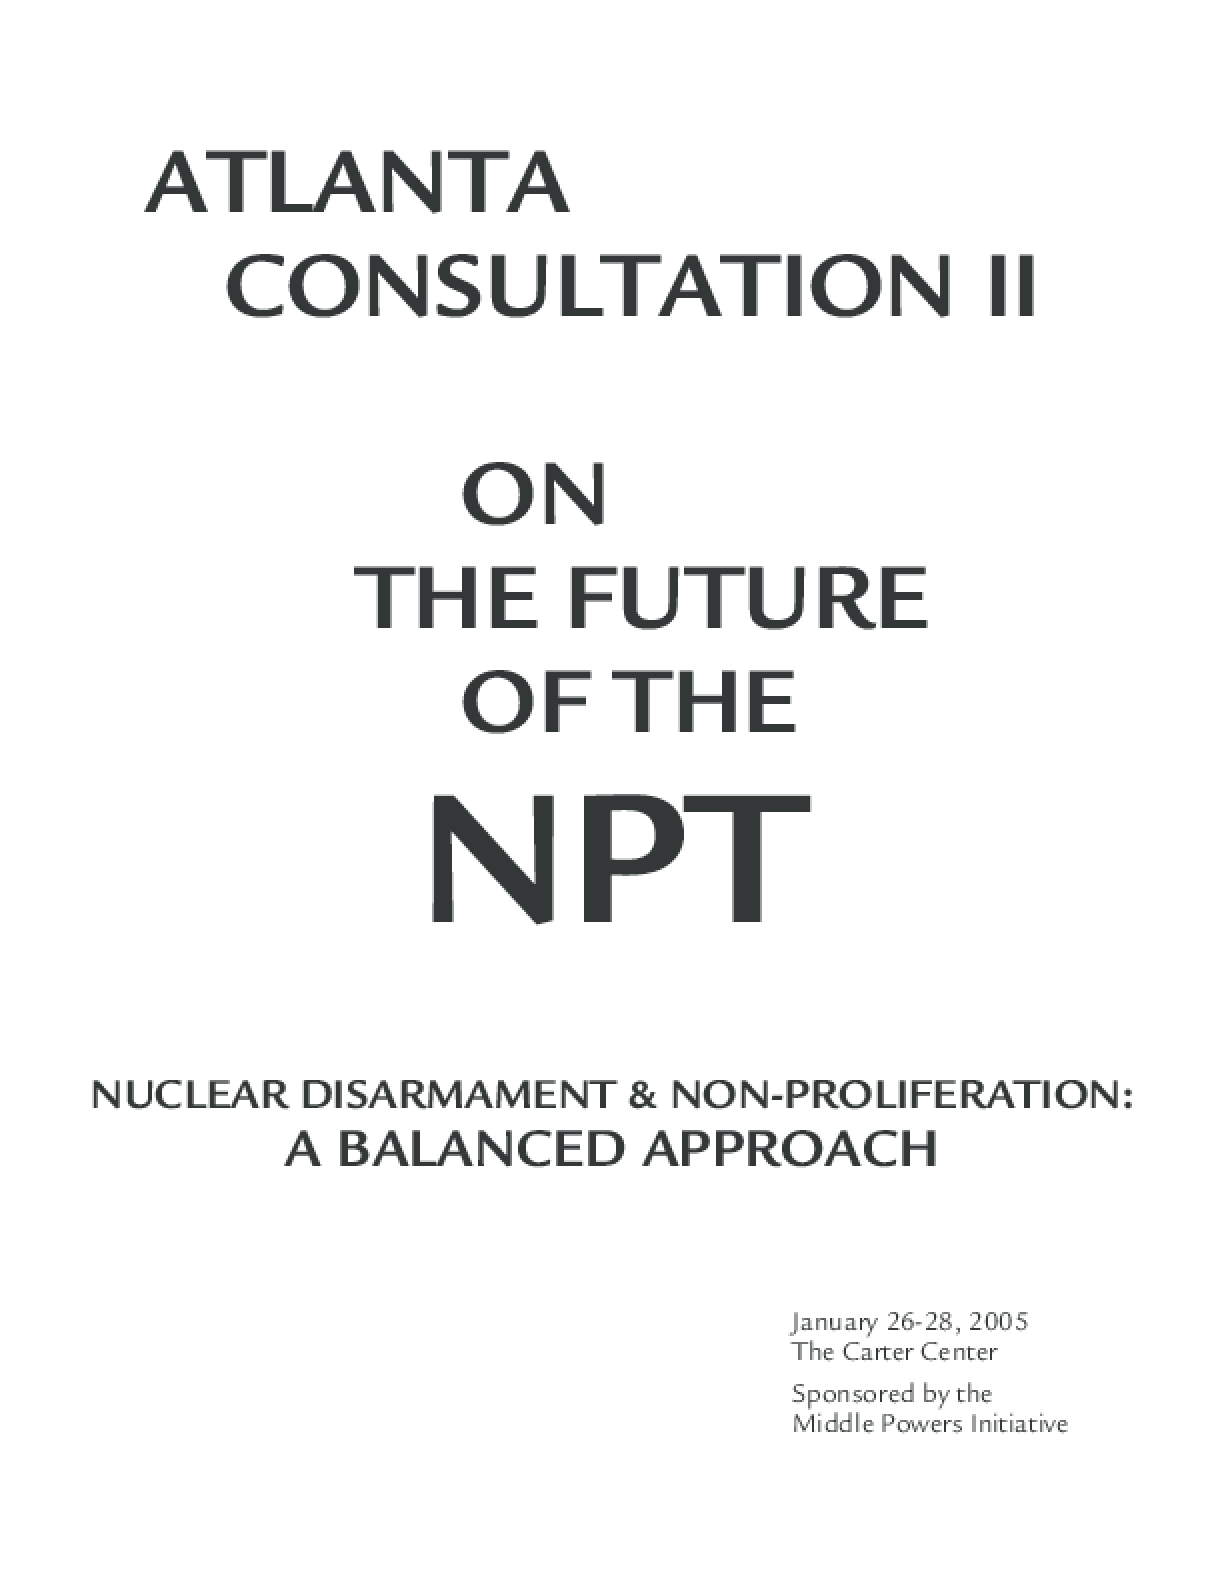 Atlanta Consultation II: On the Future of the NPT